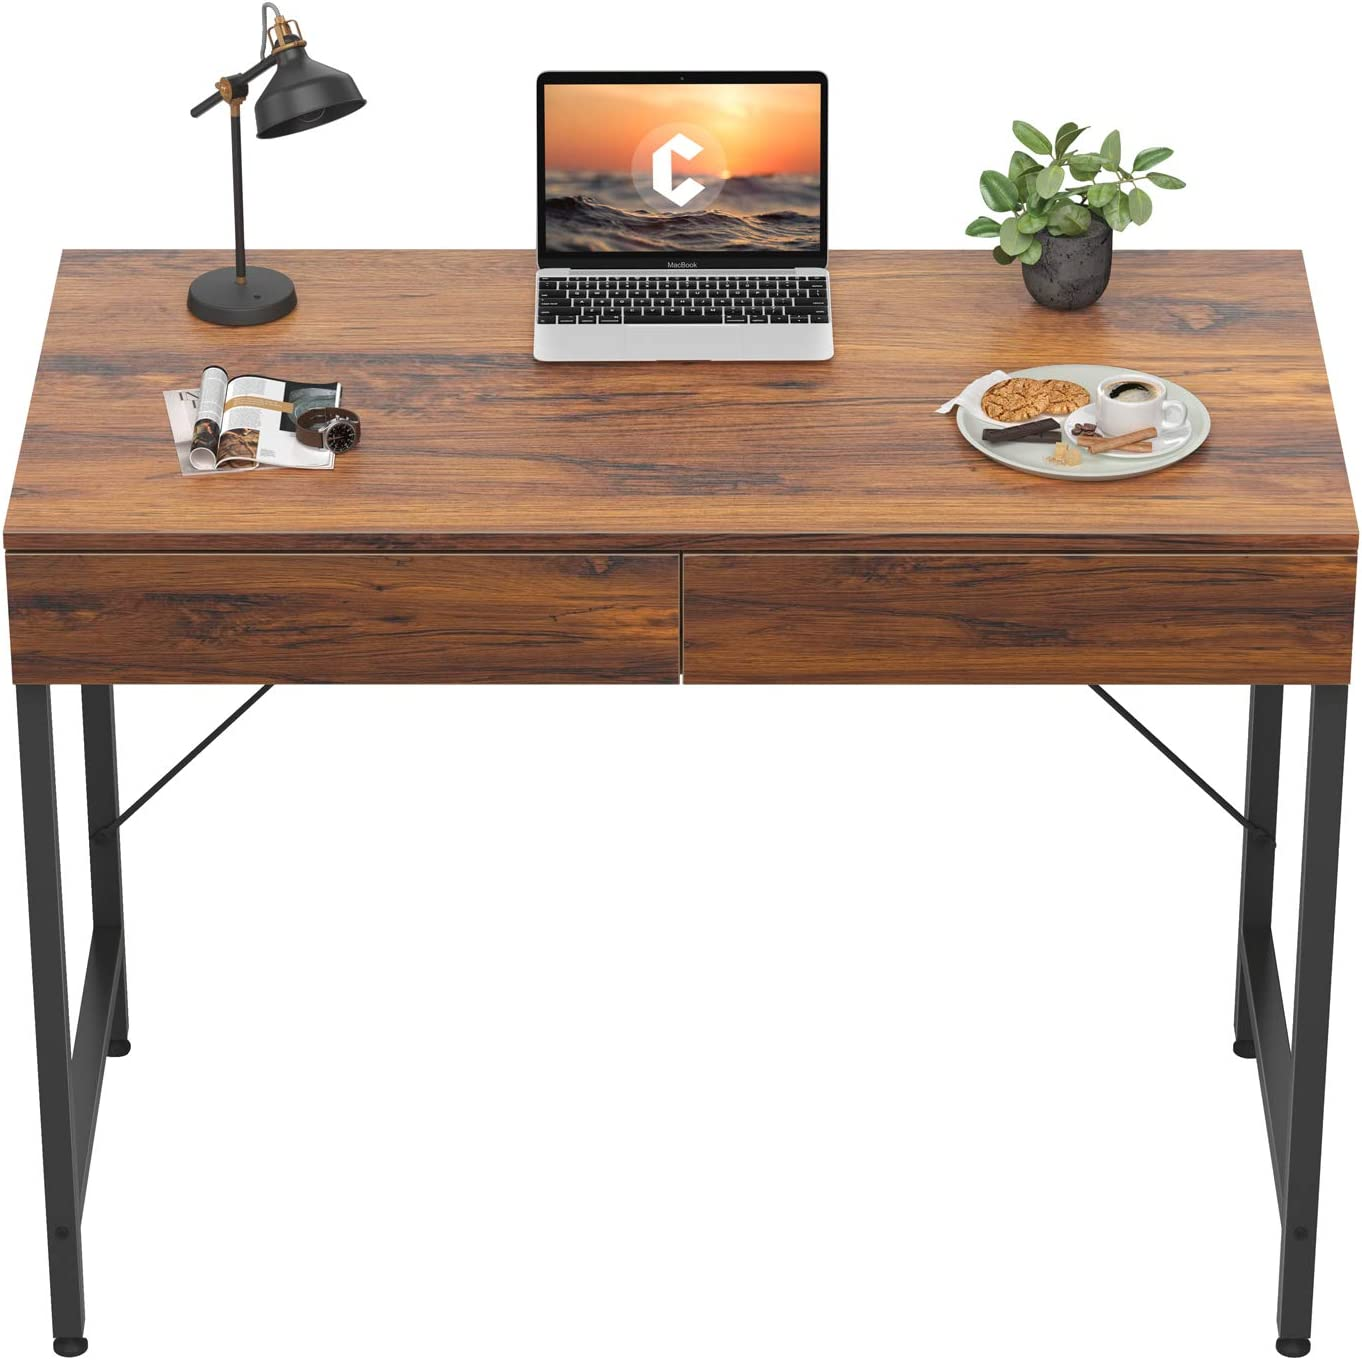 CubiCubi Computer Small Desk, 40 inches with 2 Storage Drawers for Home Office Writing Desk, Makeup Vanity Console Table, Dark Rustic